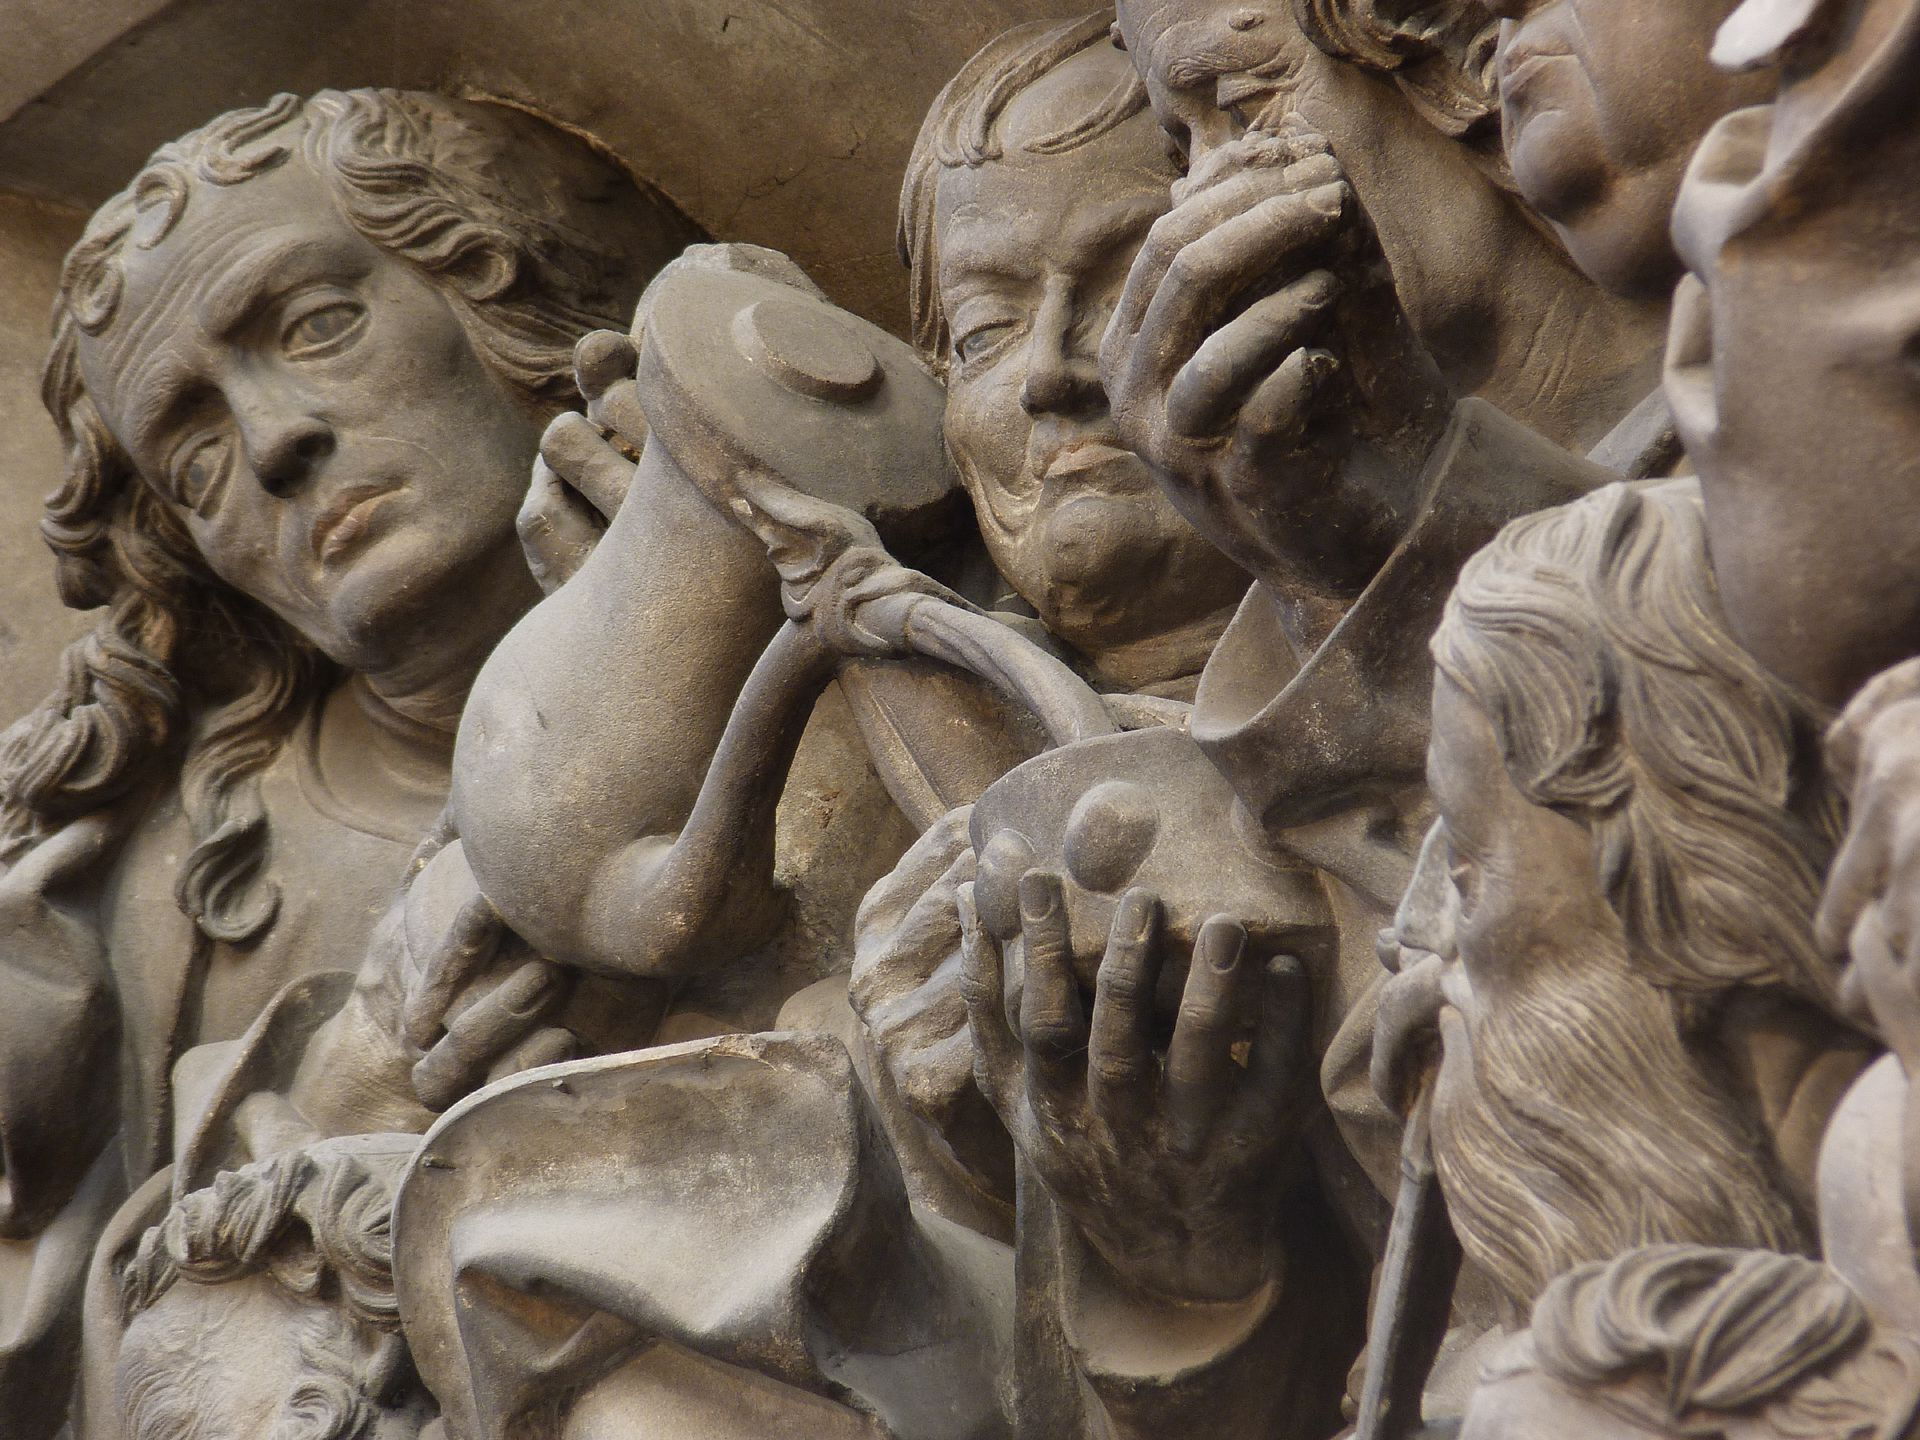 Volckamer Memorial Foundation, relief plates Last Supper, detail: Group of Apostles with wine being served